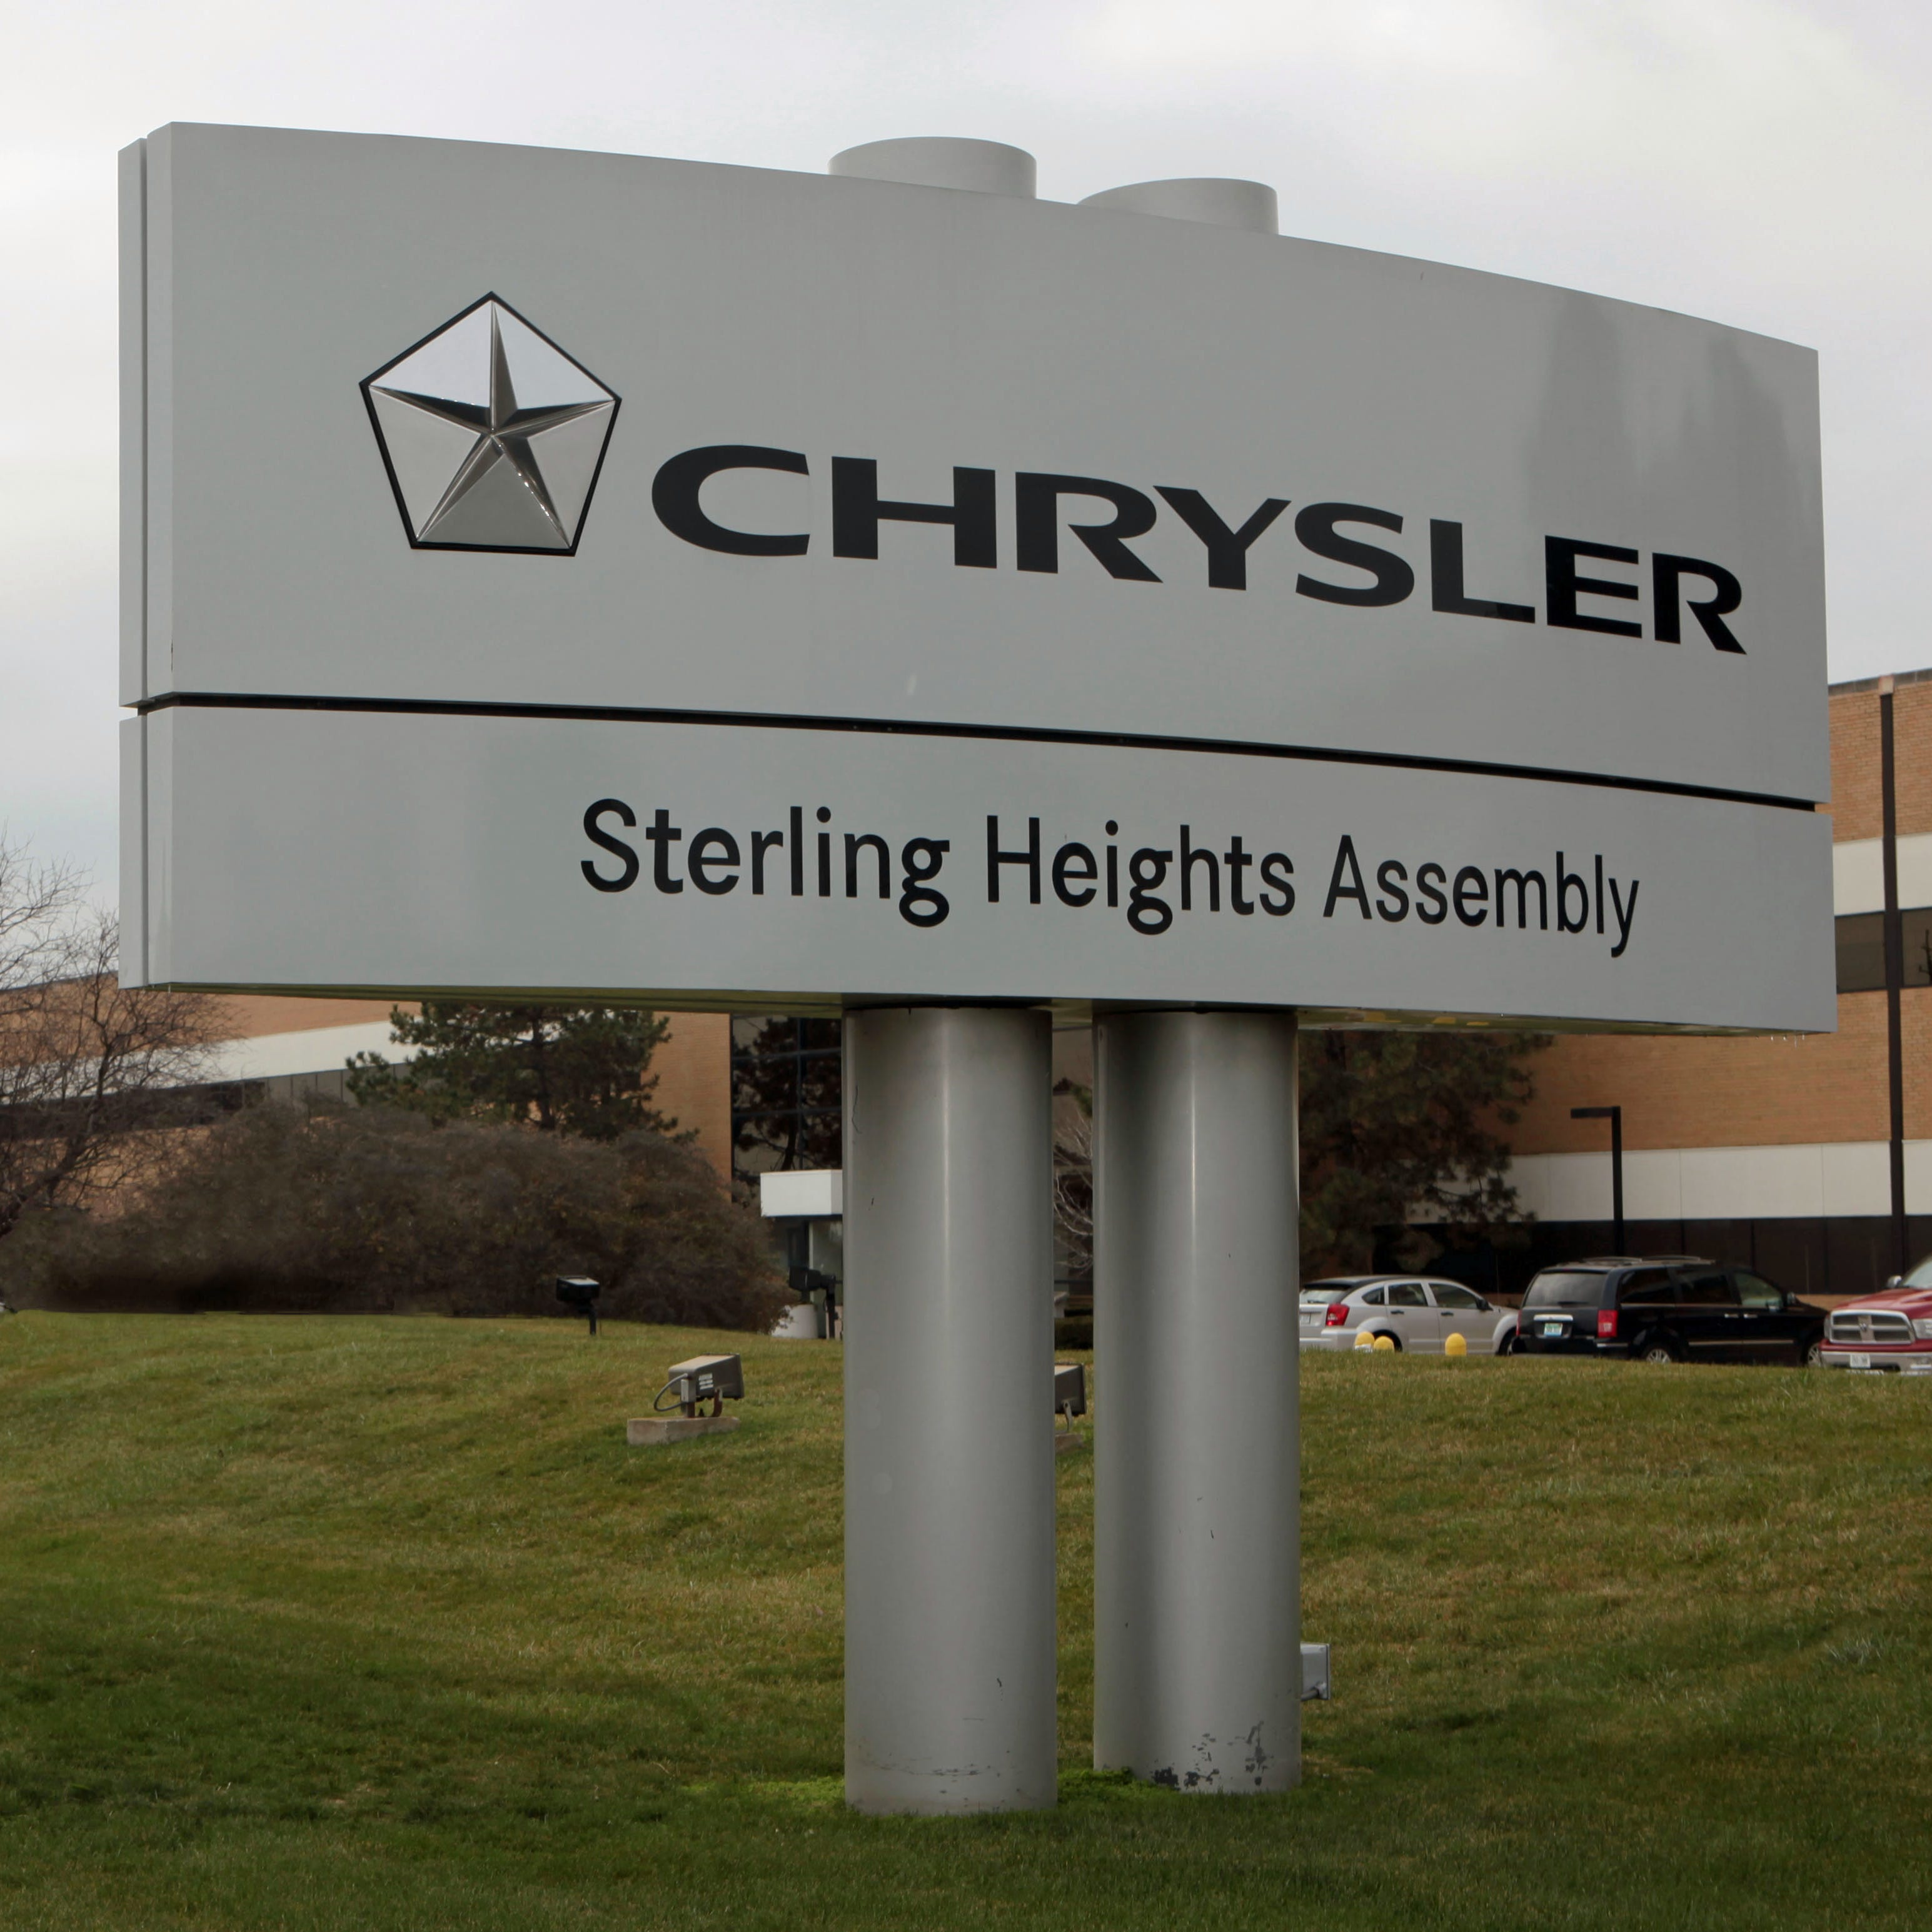 Fiat Chrysler investigates report of noose at Sterling Heights Assembly